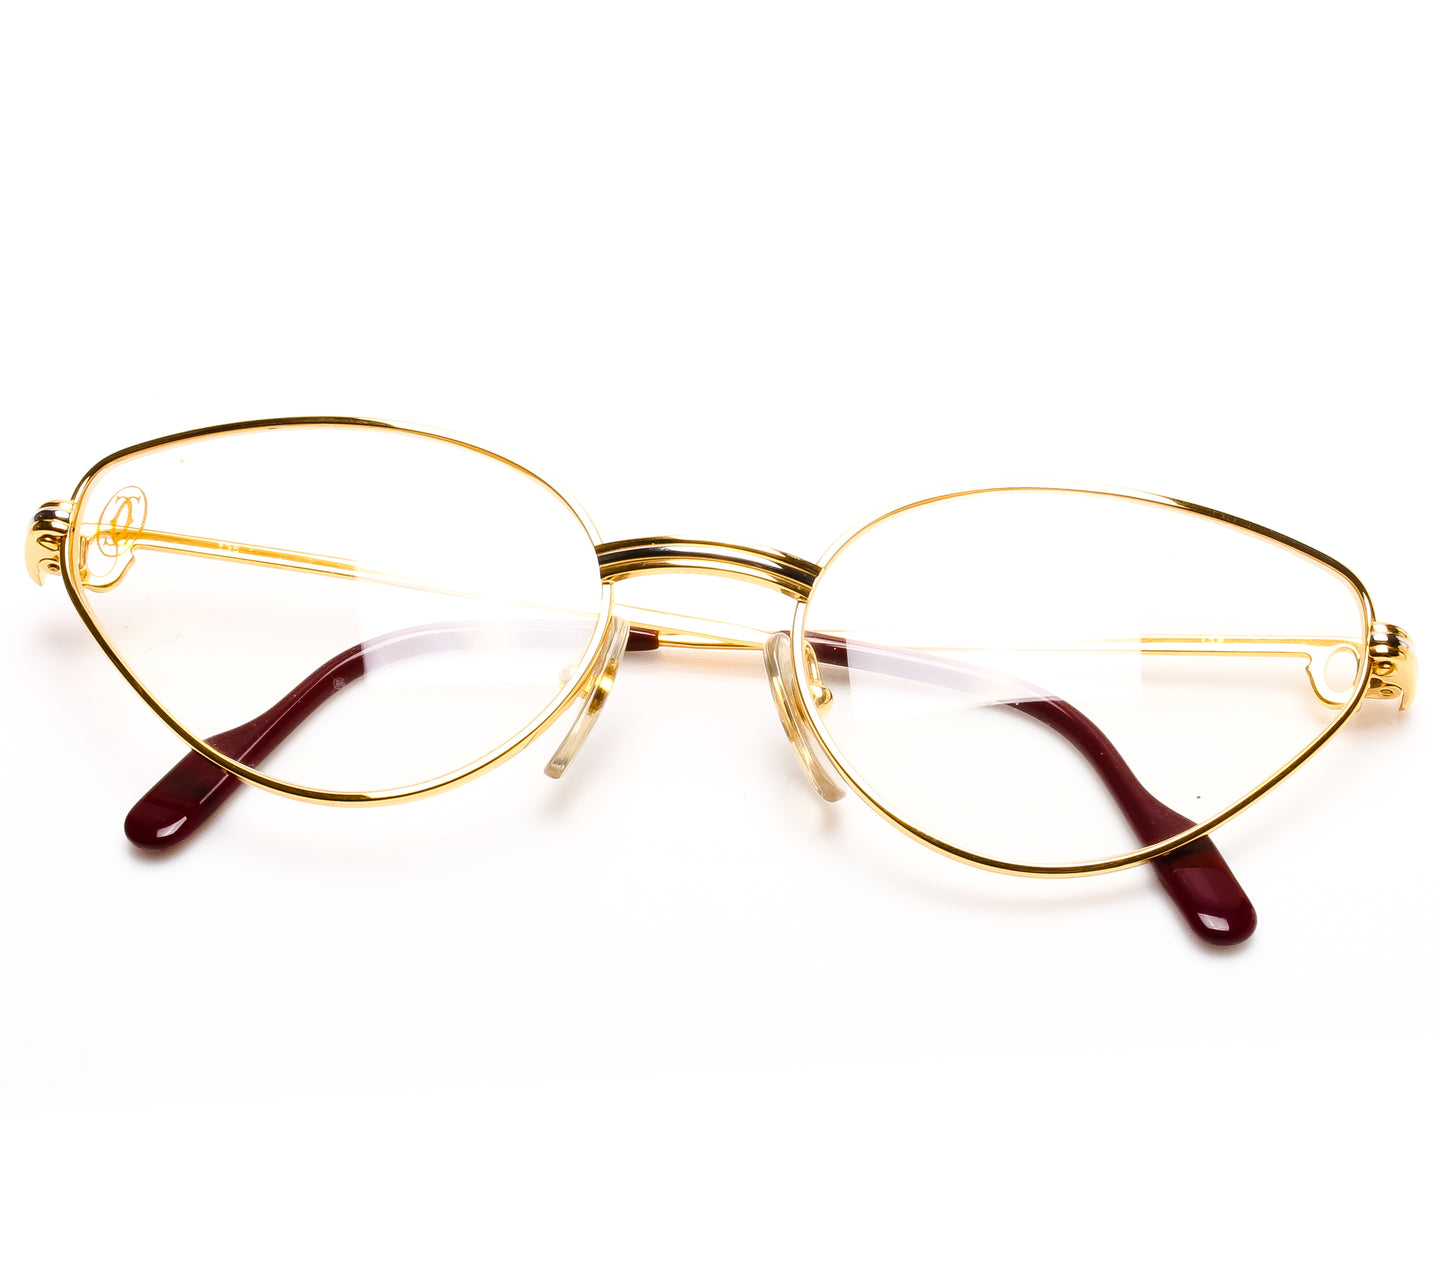 Cartier Rivoli Thumbnail, Cartier , glasses frames, eyeglasses online, eyeglass frames, mens glasses, womens glasses, buy glasses online, designer eyeglasses, vintage sunglasses, retro sunglasses, vintage glasses, sunglass, eyeglass, glasses, lens, vintage frames company, vf